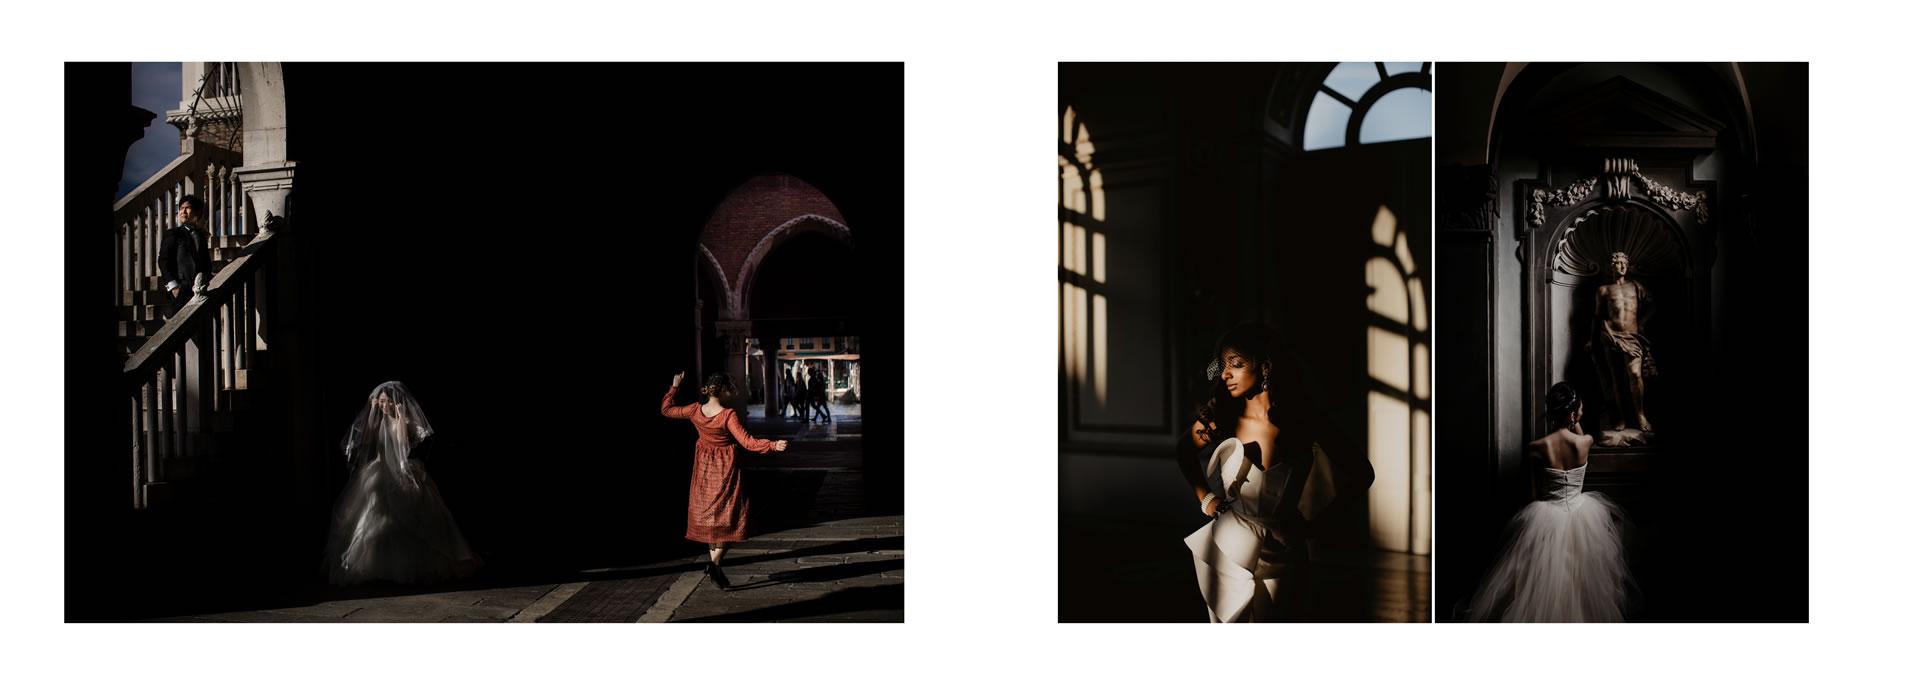 - 28 :: BEST OF 2018 WEDDING: A COLLECTION TO TELL ONE YEAR STORY :: Luxury wedding photography - 27 ::  - 28